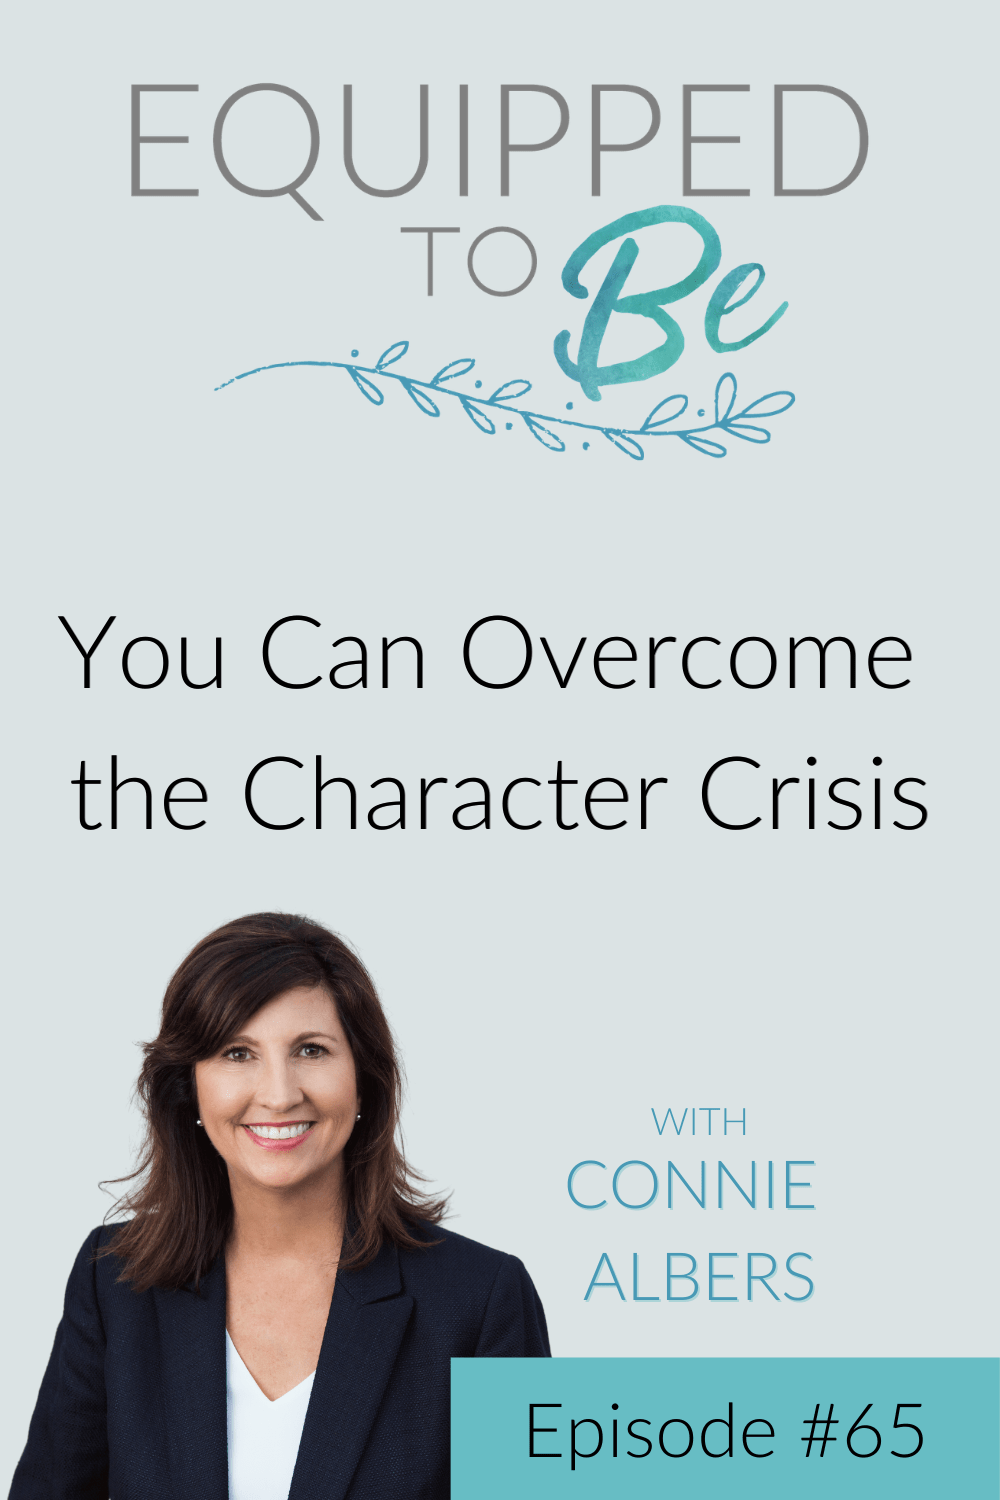 You Can Overcome the Character Crisis - ETB #65